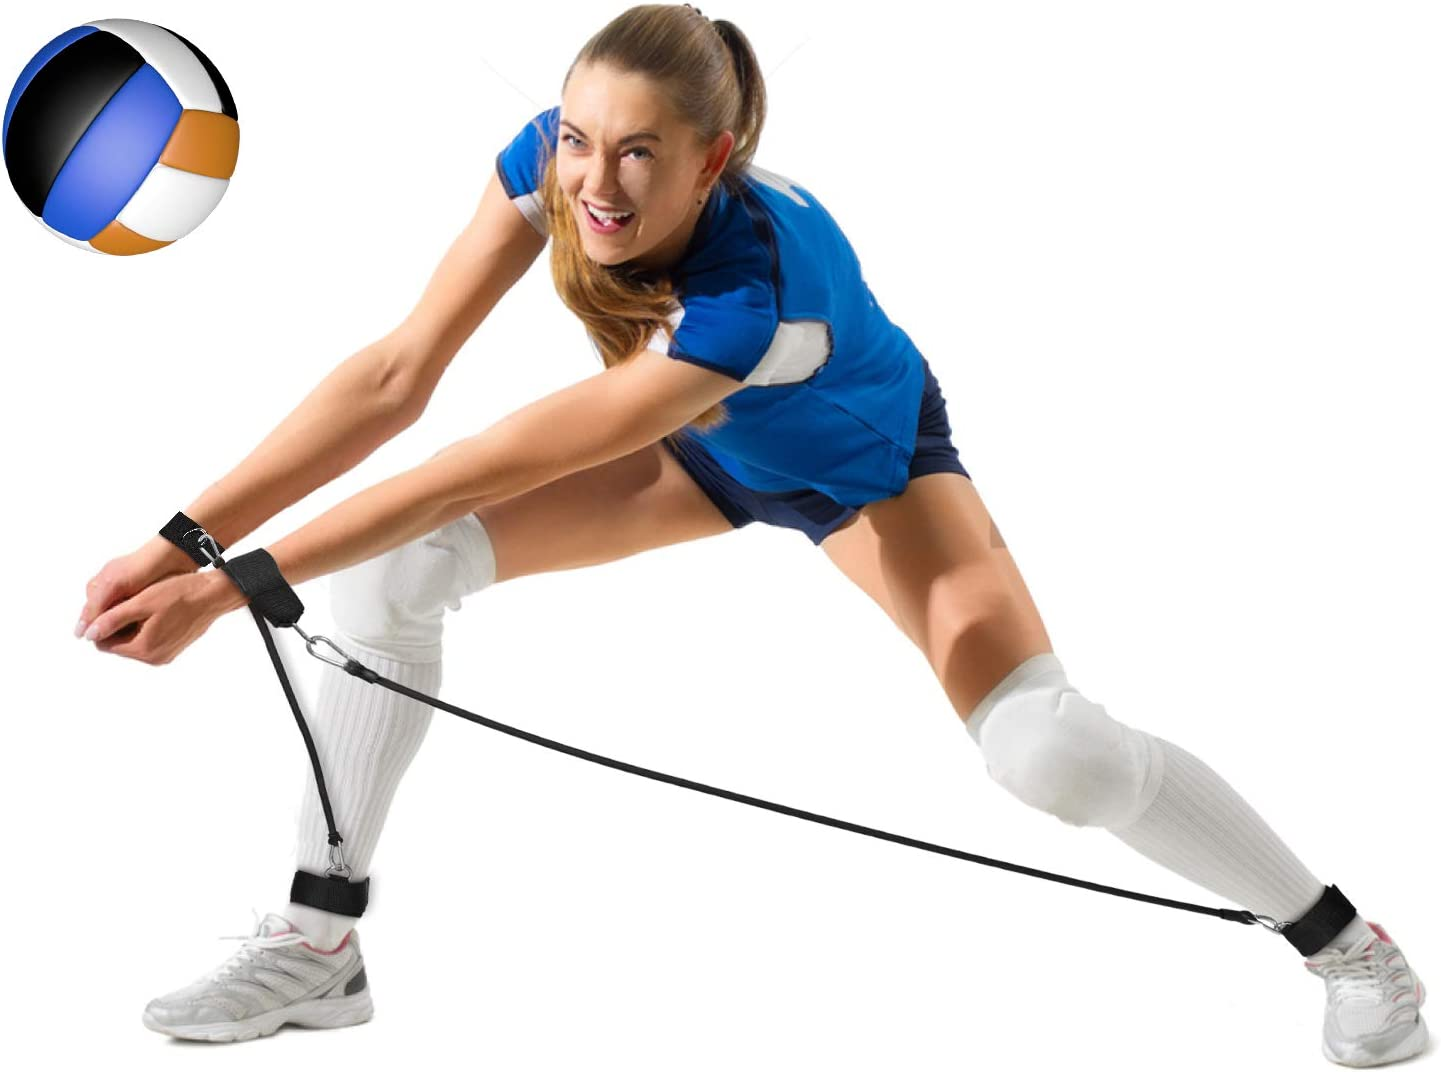 BFVV Volleyball Training Equipment Passing Aid Resistance Band for Practicing Serving, Arm Swing Passing, Agility Training (Black) : Sports & Outdoors